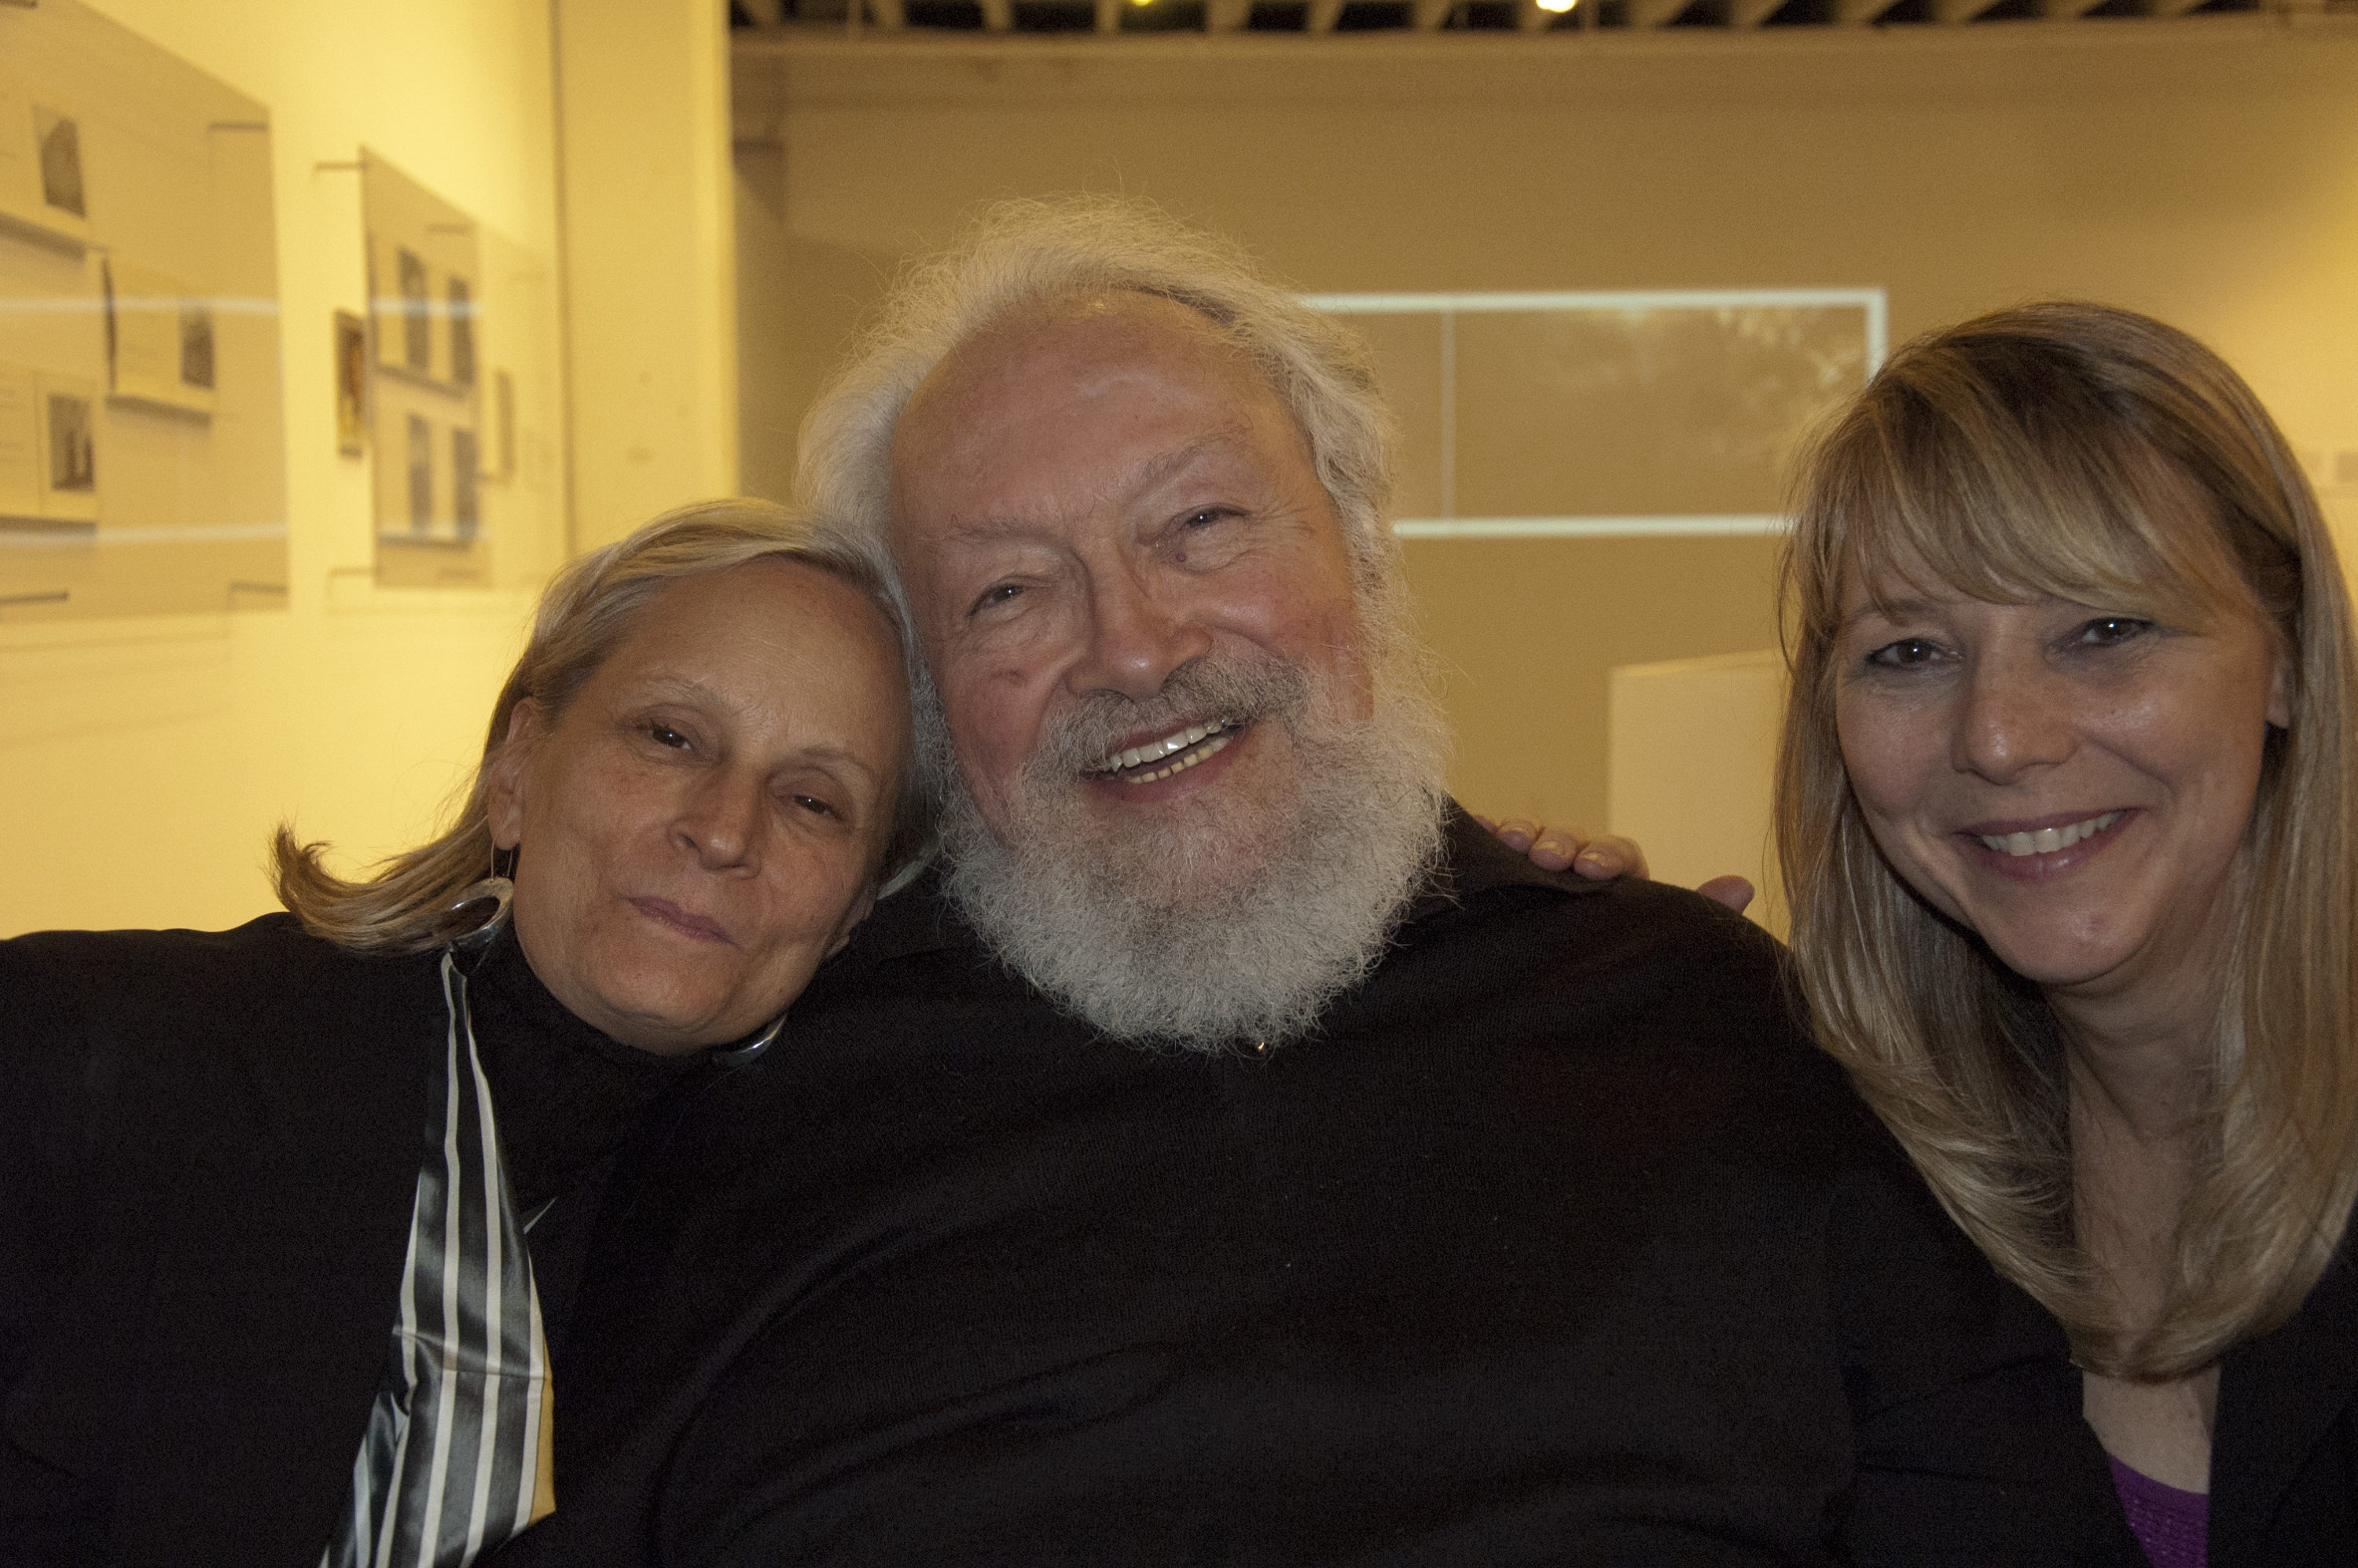 Judith, Cherie and I relax at the end of a long and happy night!